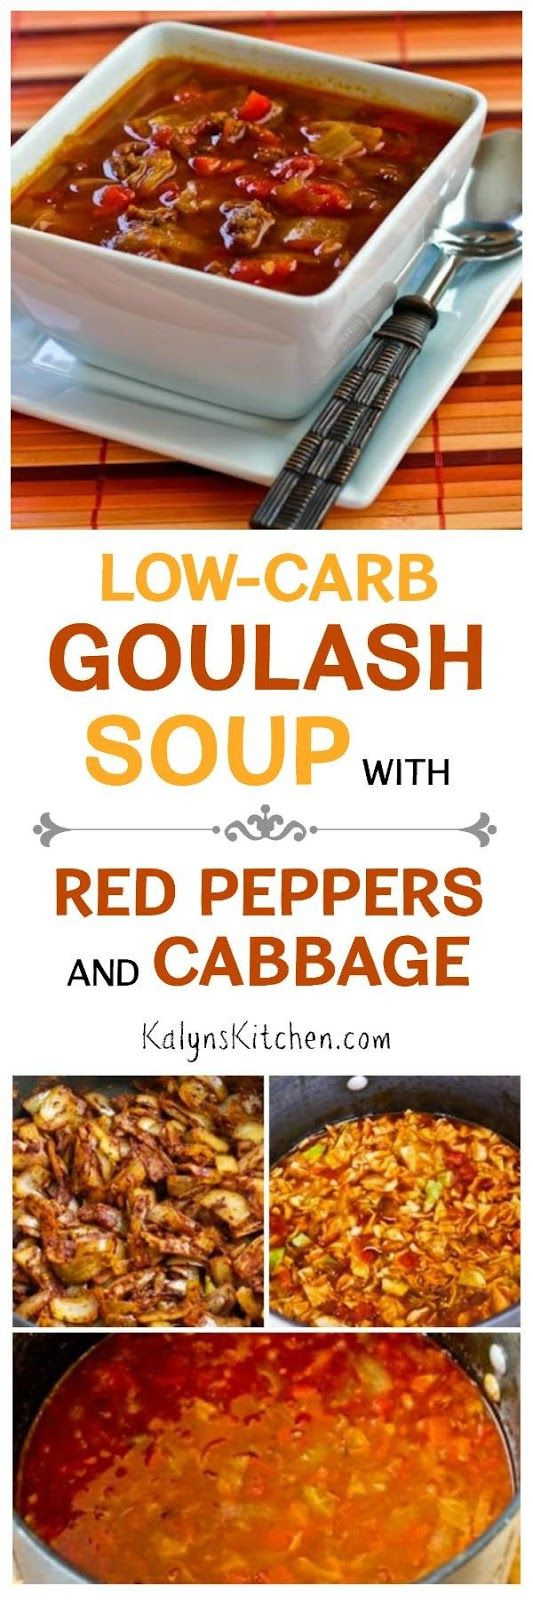 Low-Carb Goulash Soup with Red Peppers and Cabbage has all the flavors of Hungarian Gulyas, without the higher-carb veggies and this soup is delicious! It's also gluten-free, South Beach Diet friendly, and can be Paleo if you omit the optional sour cream garnish. [found on KalynsKitchen.com]